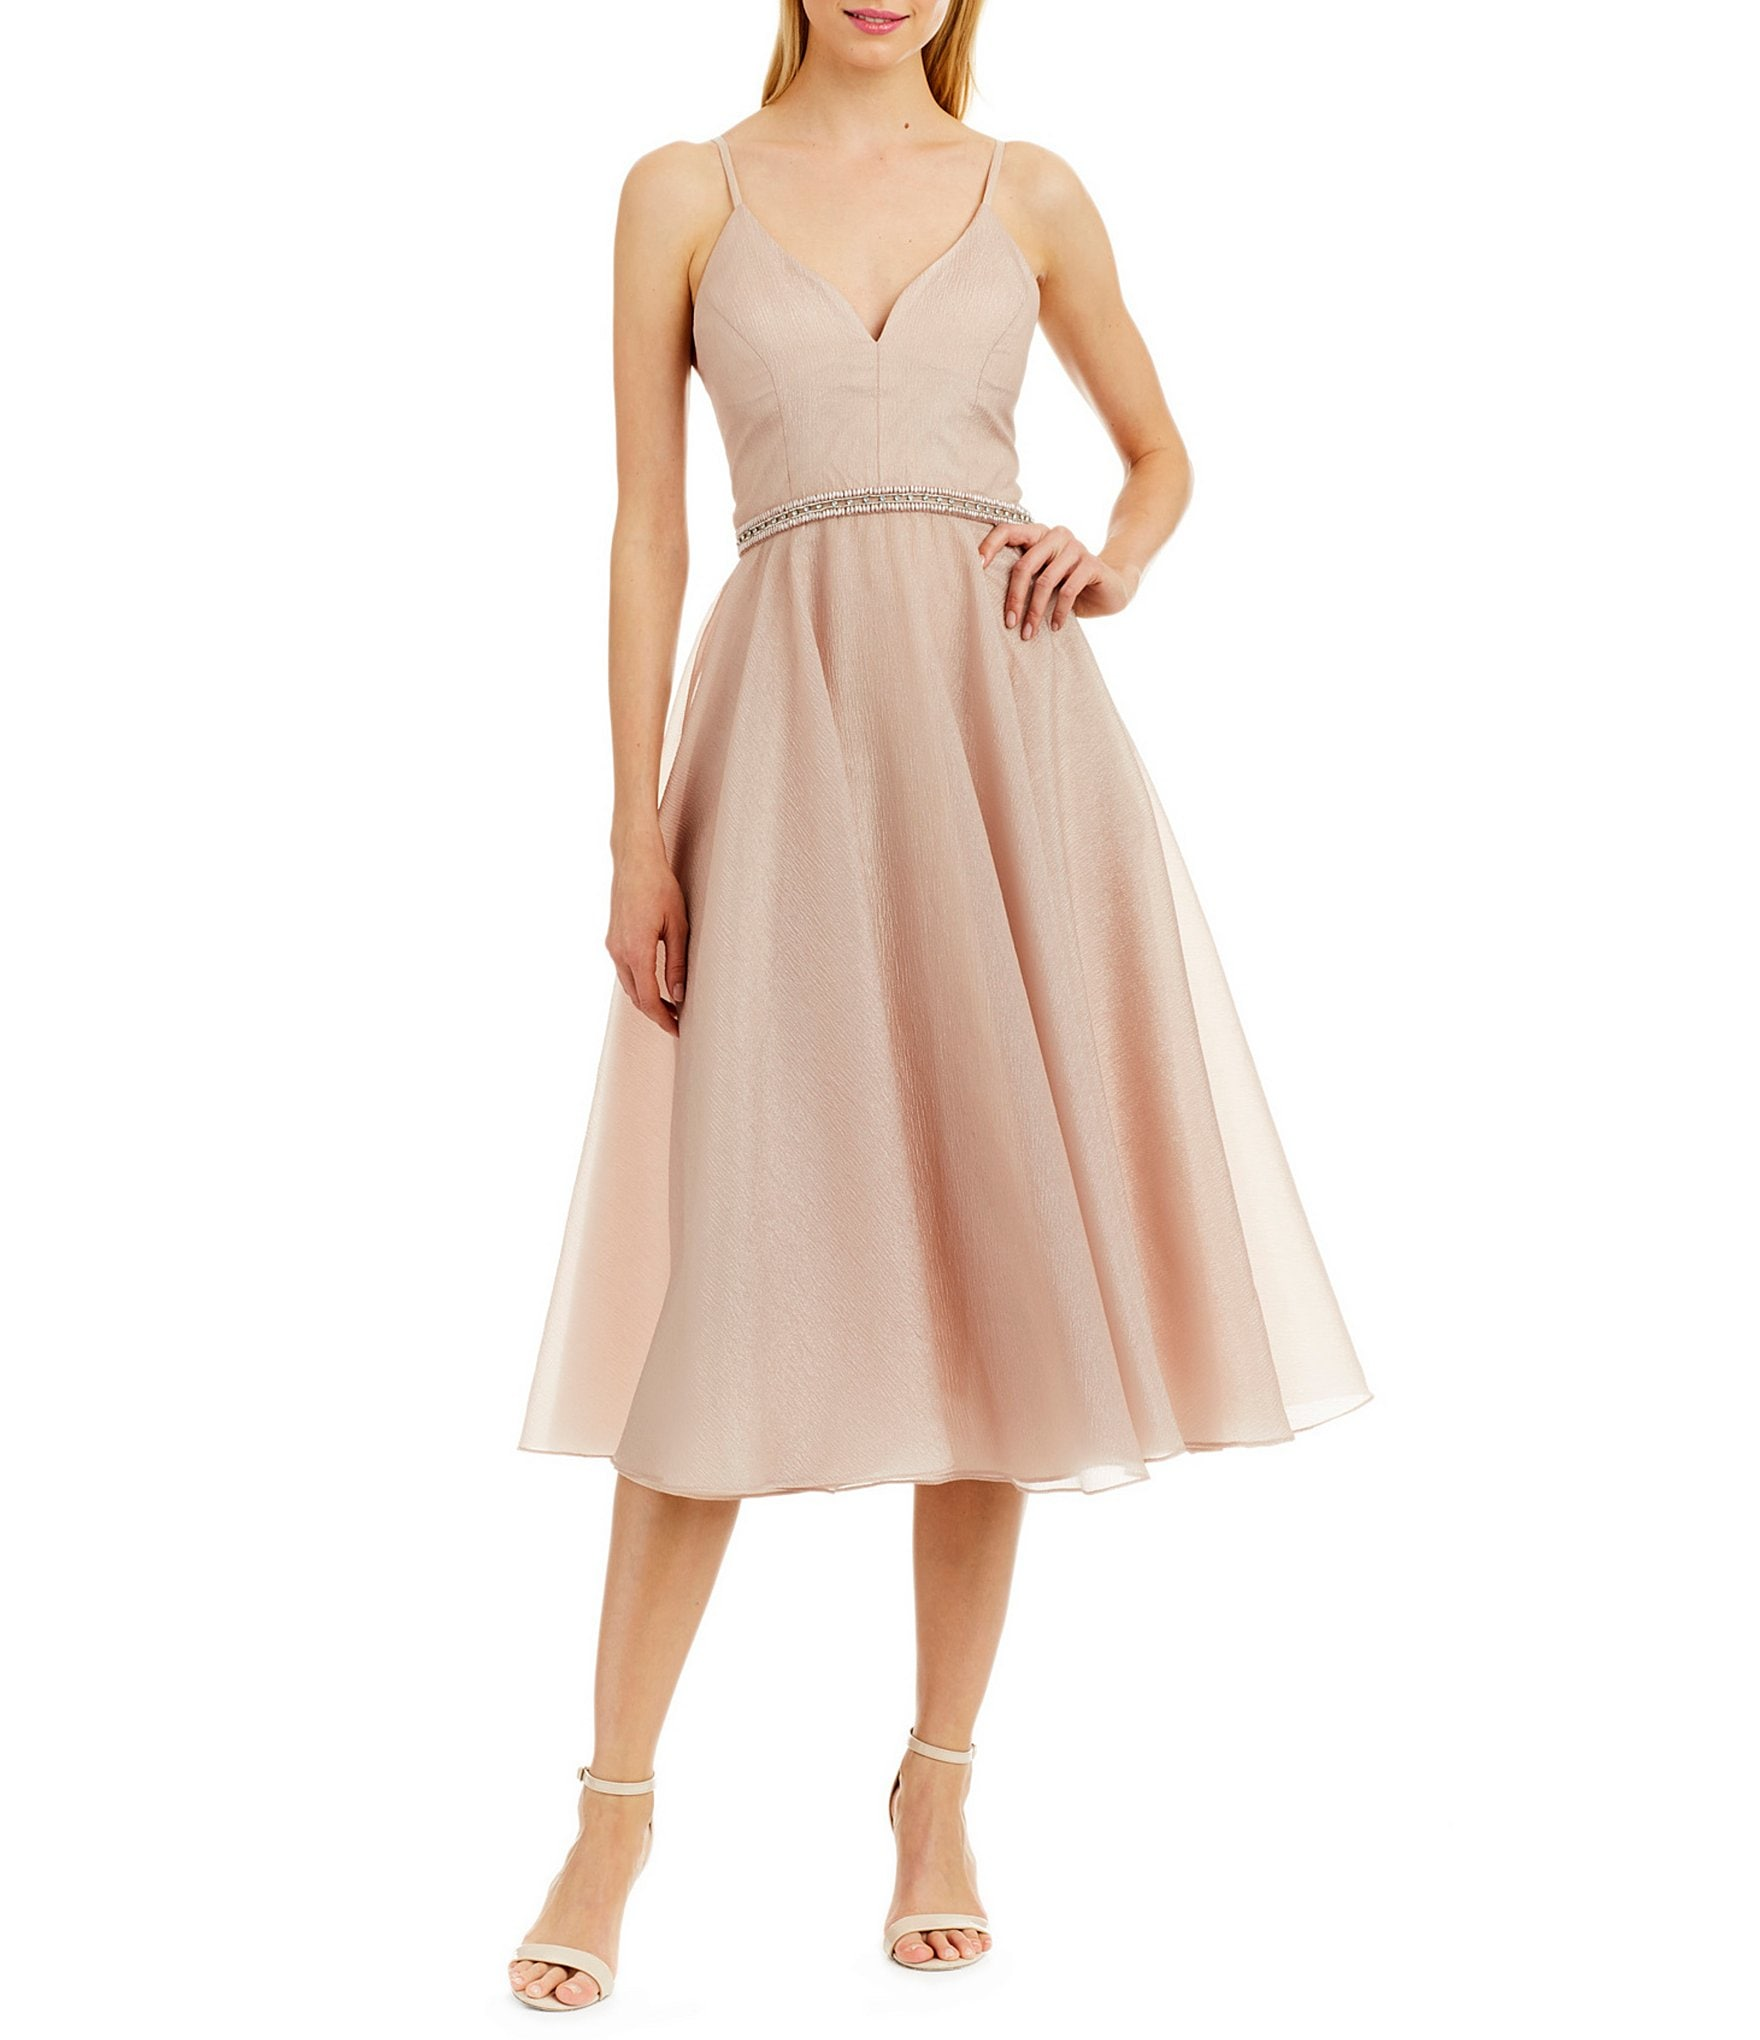 Women\'s Clothing | The Wedding Shop | Bridesmaid Dresses ...